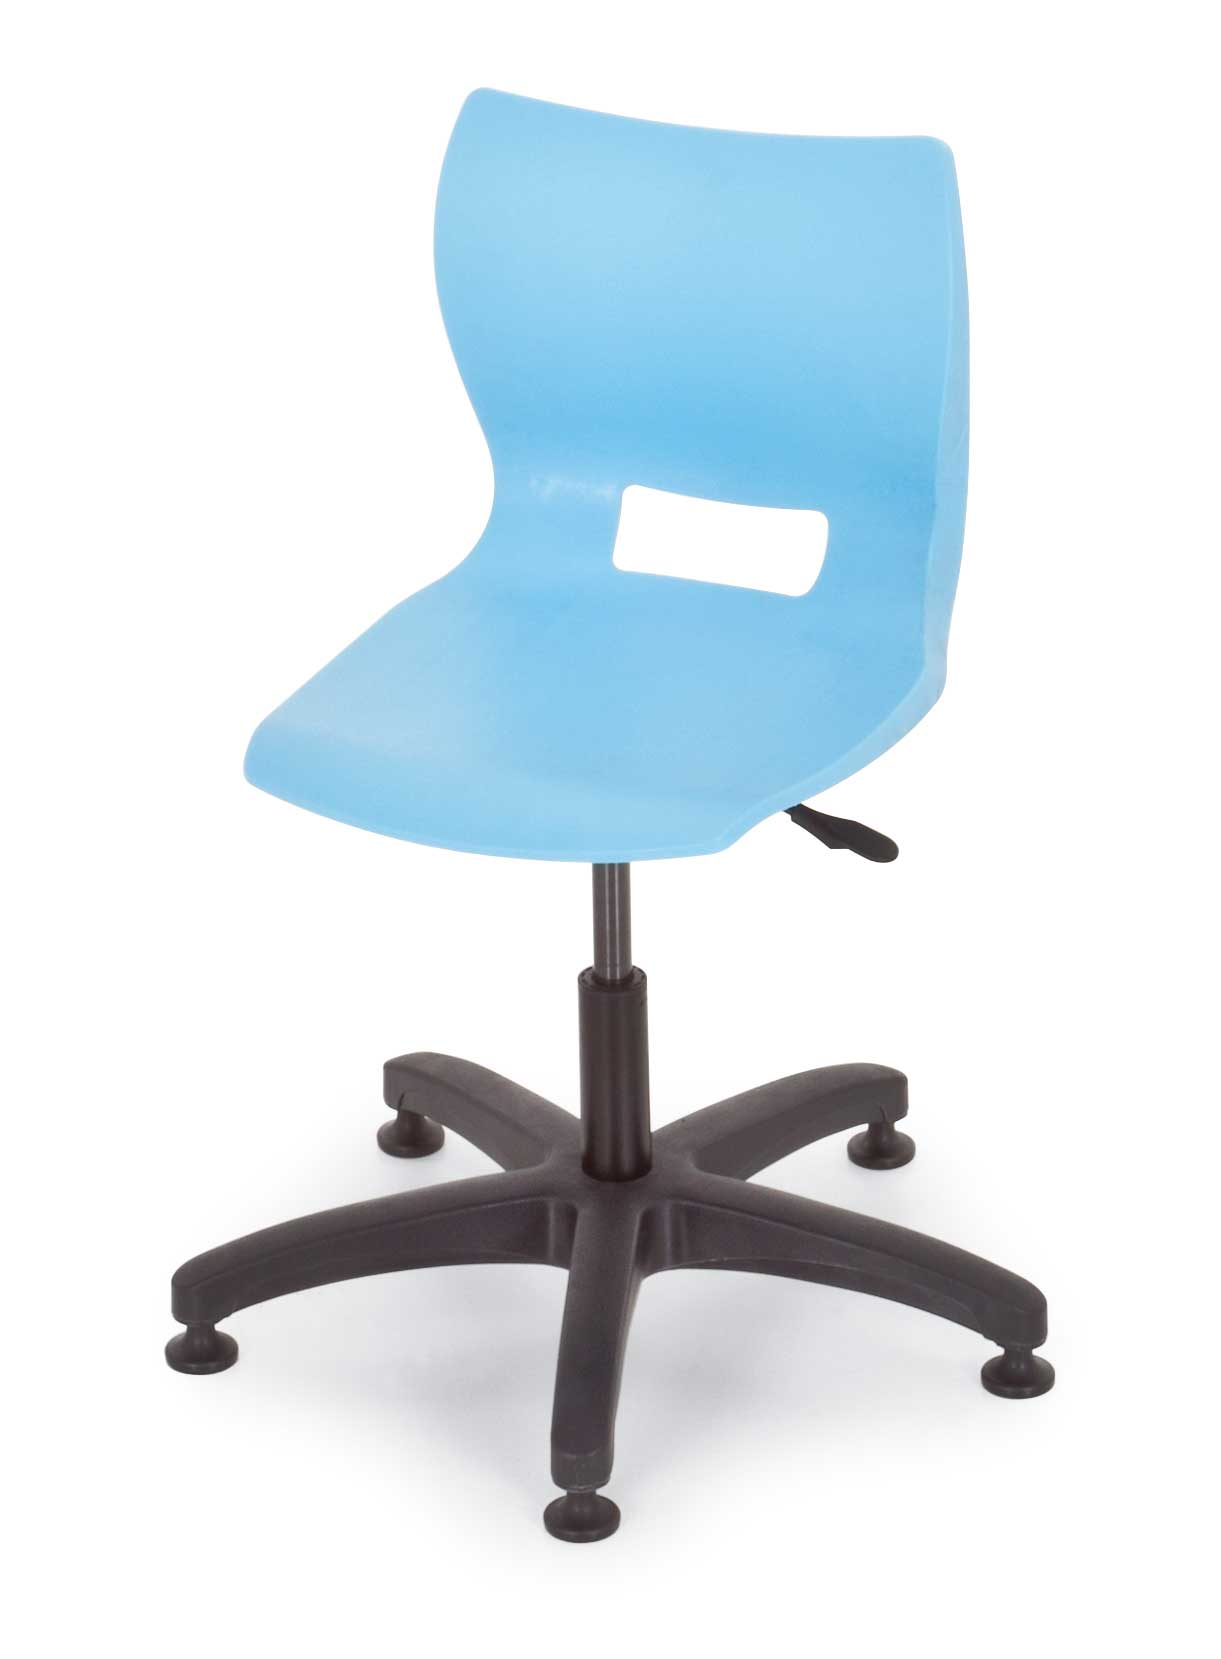 desk chair height best drafting chairs adjustable for home office